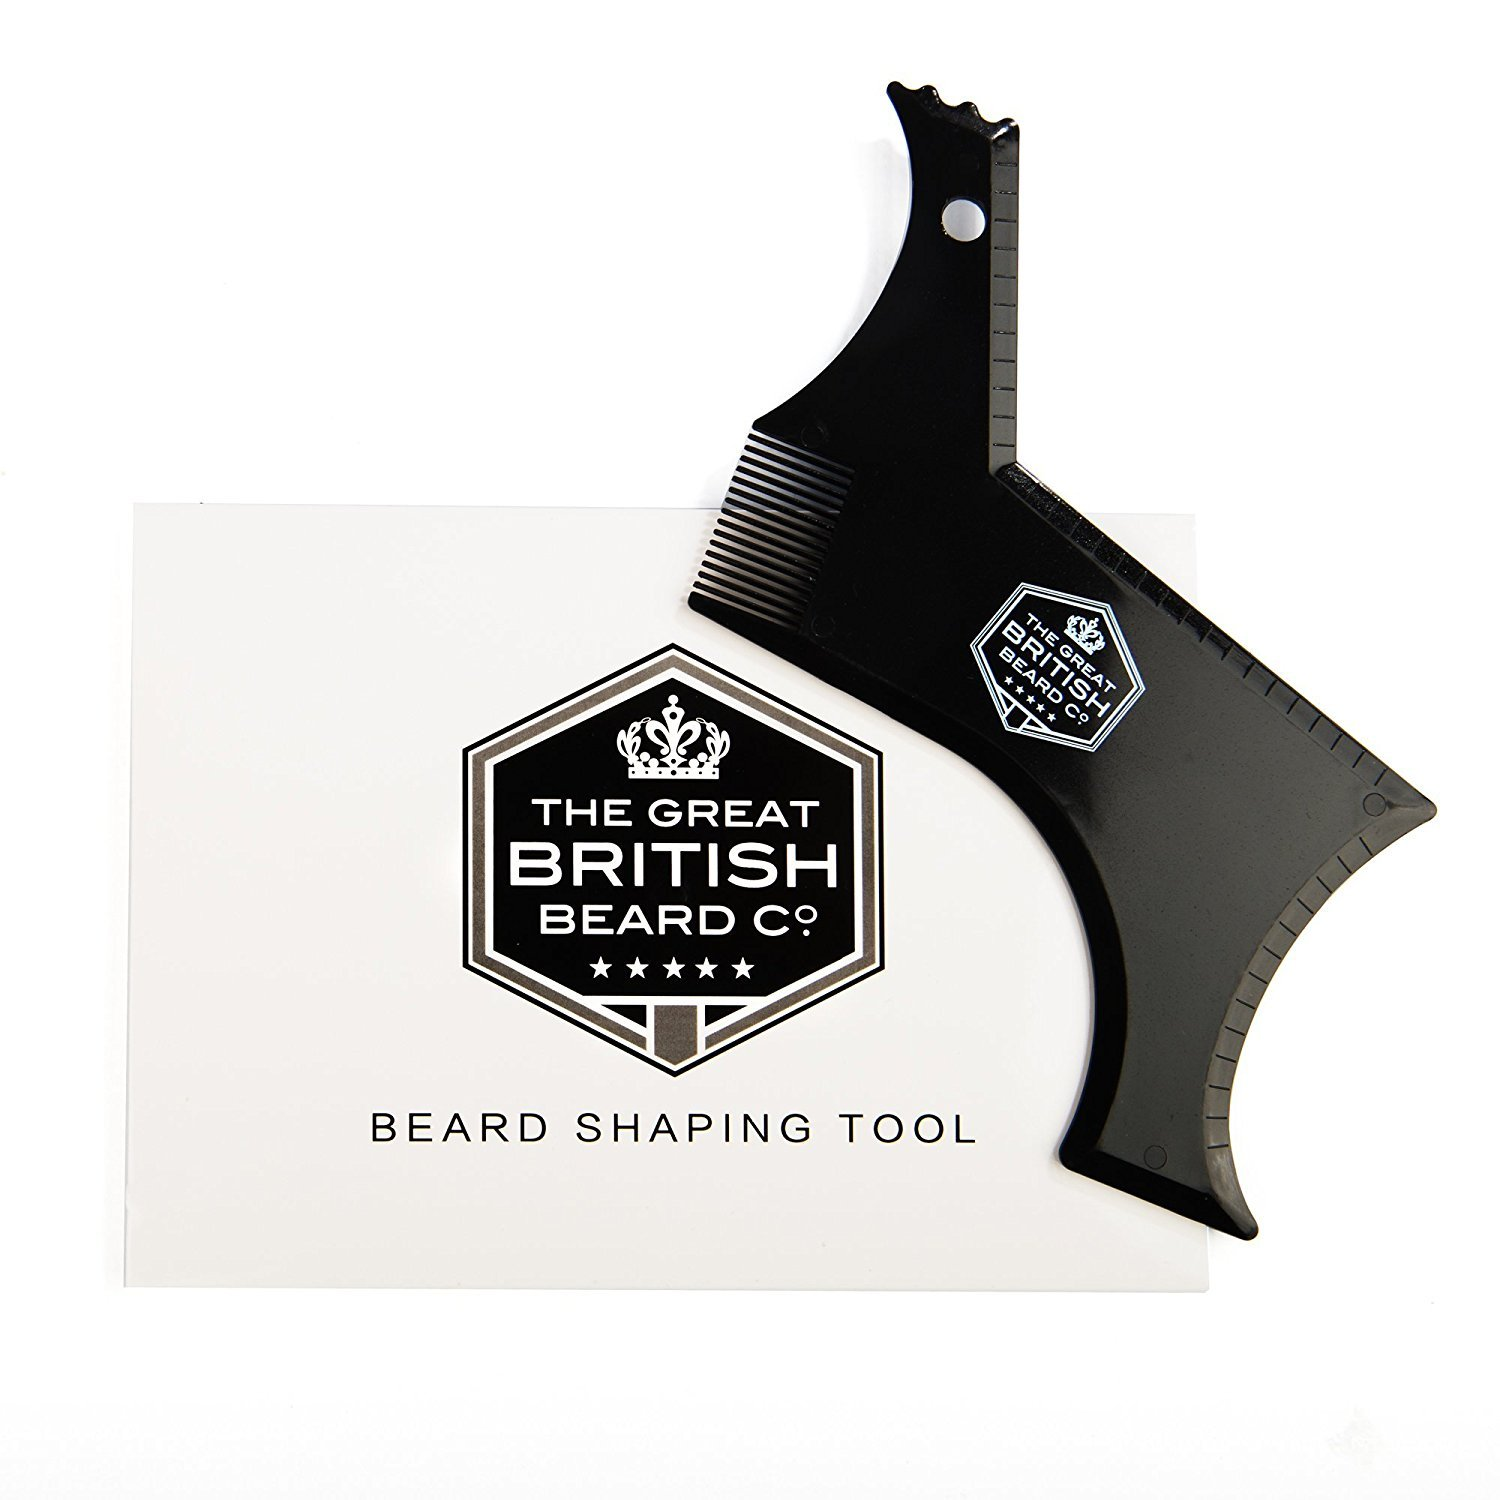 British Beard Shaping Tool For Perfect Lines and Symmetry. Beard Styling and Shaping Template ECONNECT Limited